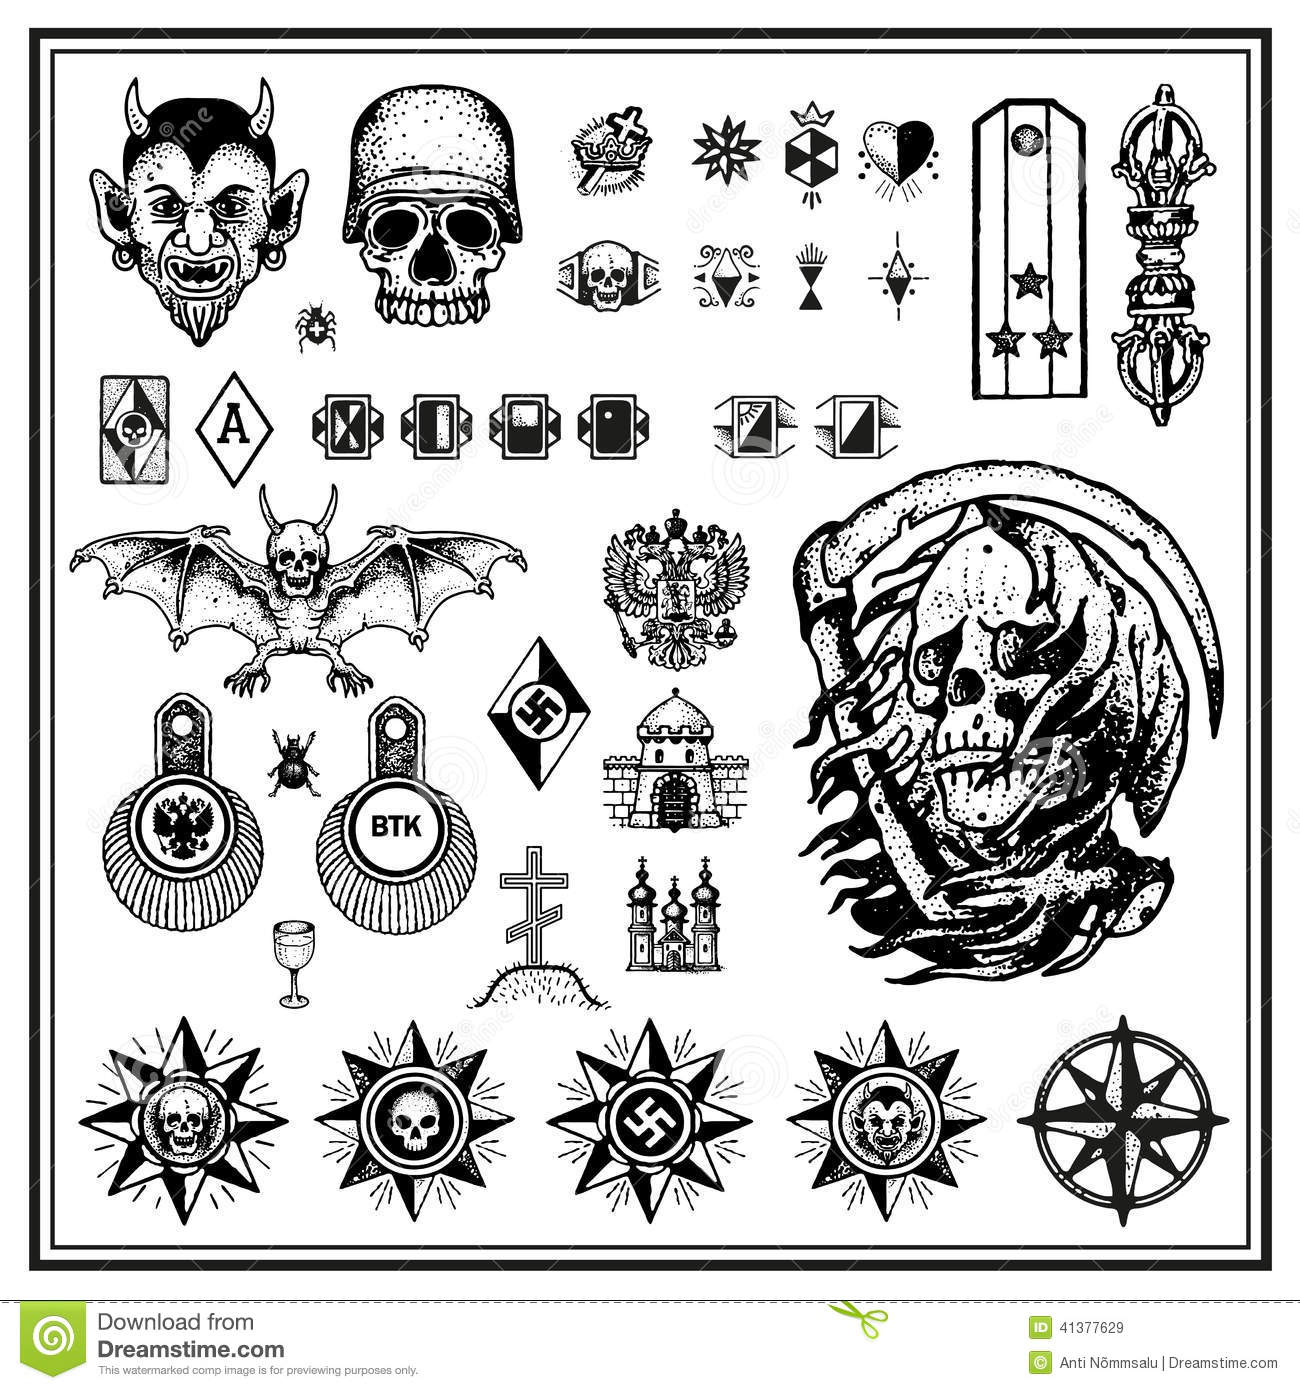 Tattoo scorpion stock photos and images - Russian Criminal Finger Tattoos Stock Vector Image 41377629